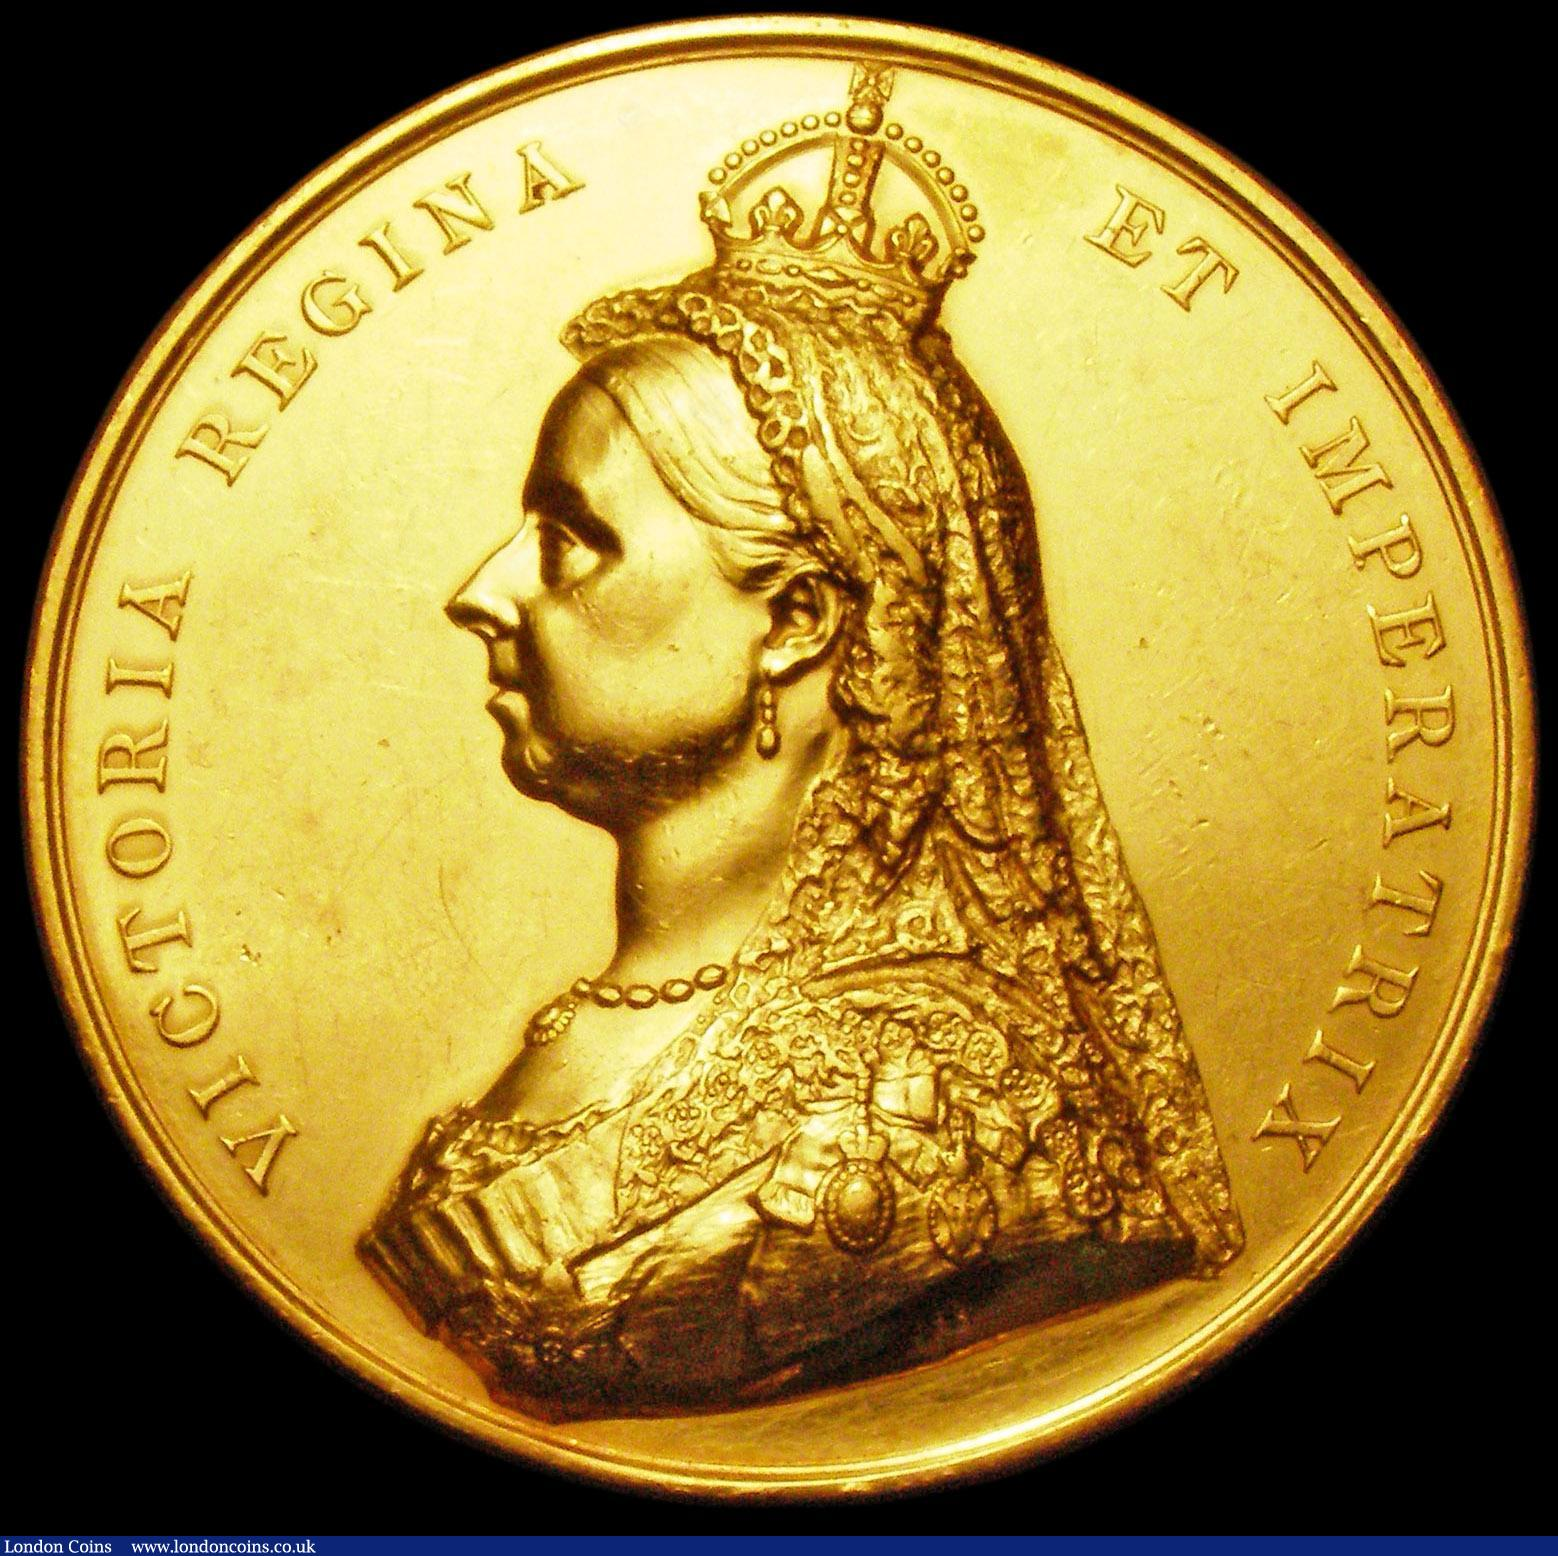 Golden Jubilee of Queen Victoria 1887 Eimer 1733 58mm diameter in